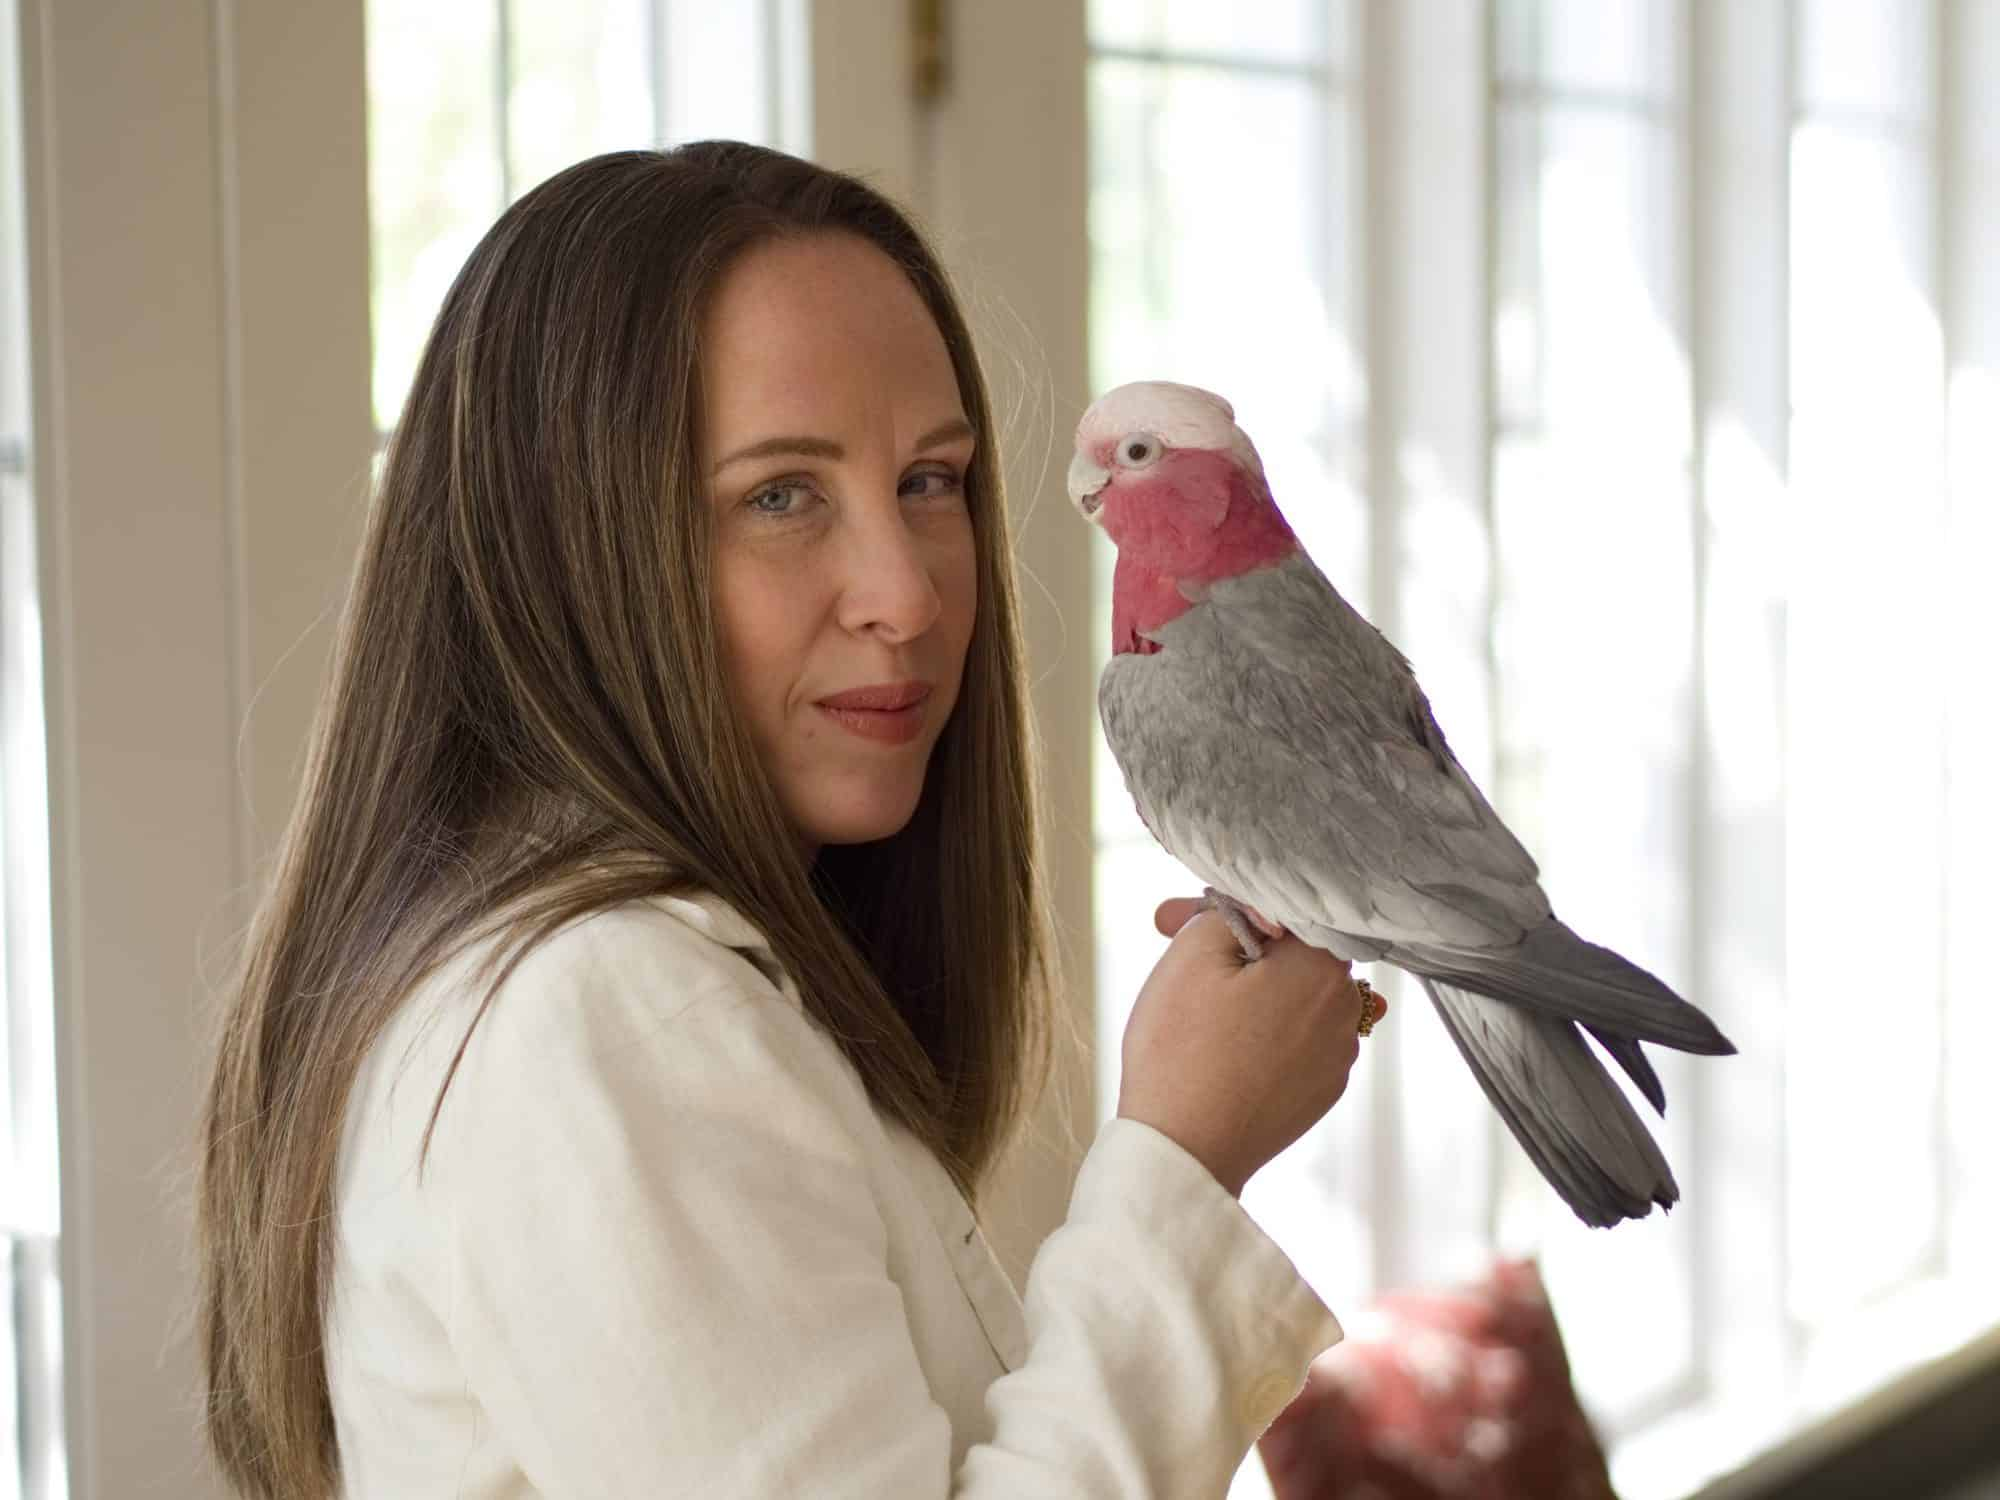 Tatiana(white woman with honey-brown hair) smiling while holding her rose breasted cockatoo. The picture is cropped at chest-height.